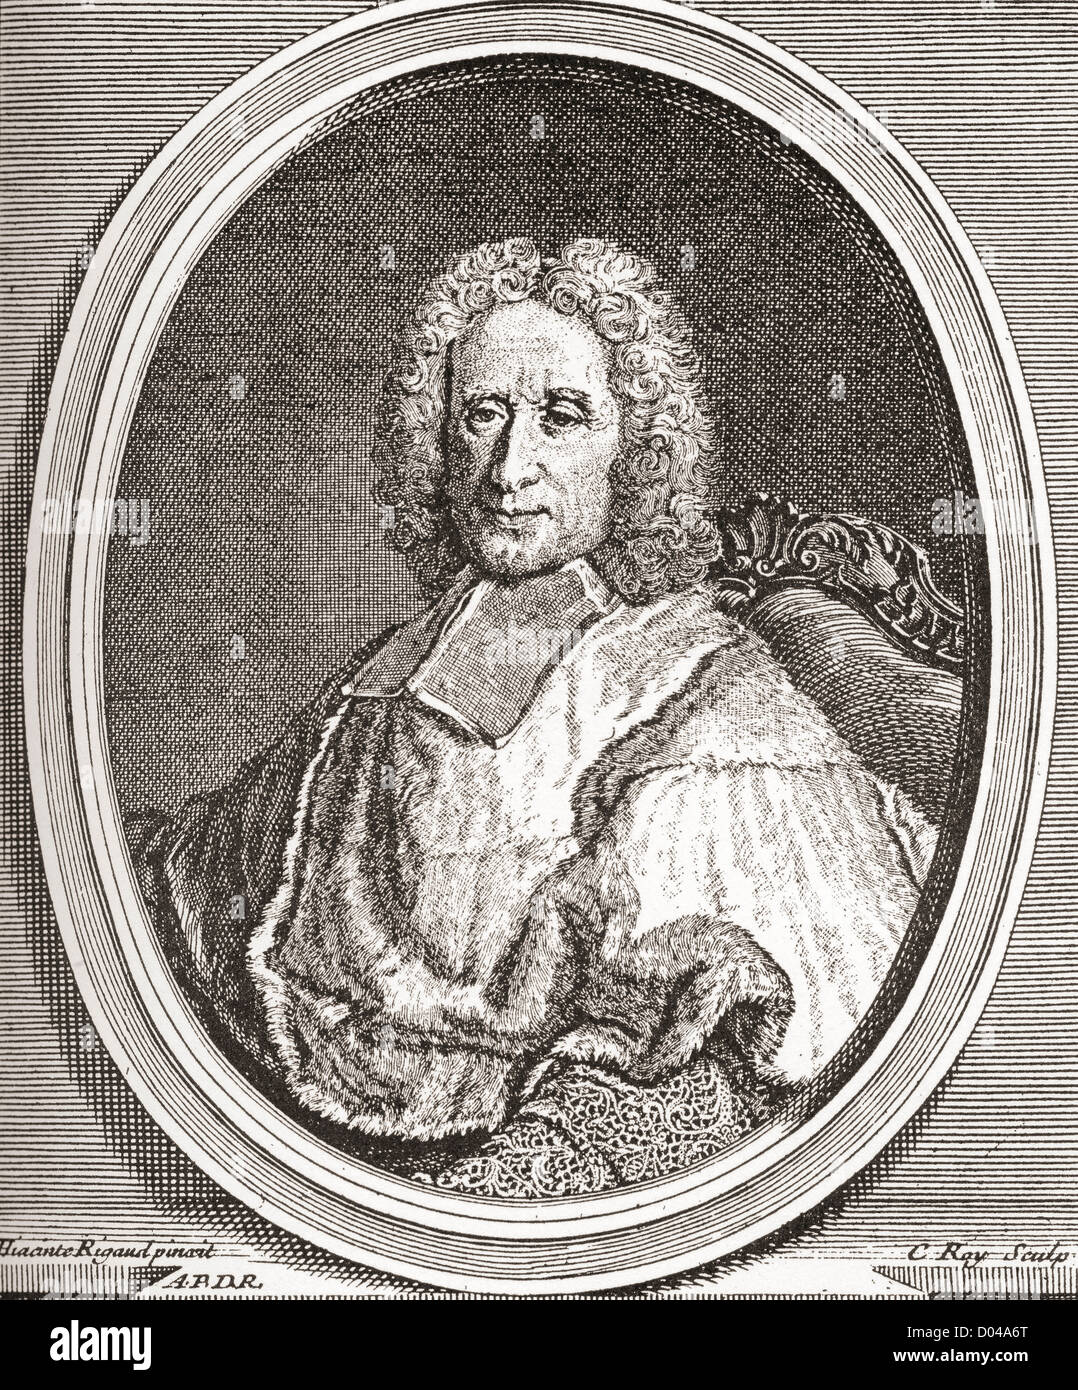 Guillaume Dubois, 1656 – 1723. French cardinal and statesman. - Stock Image